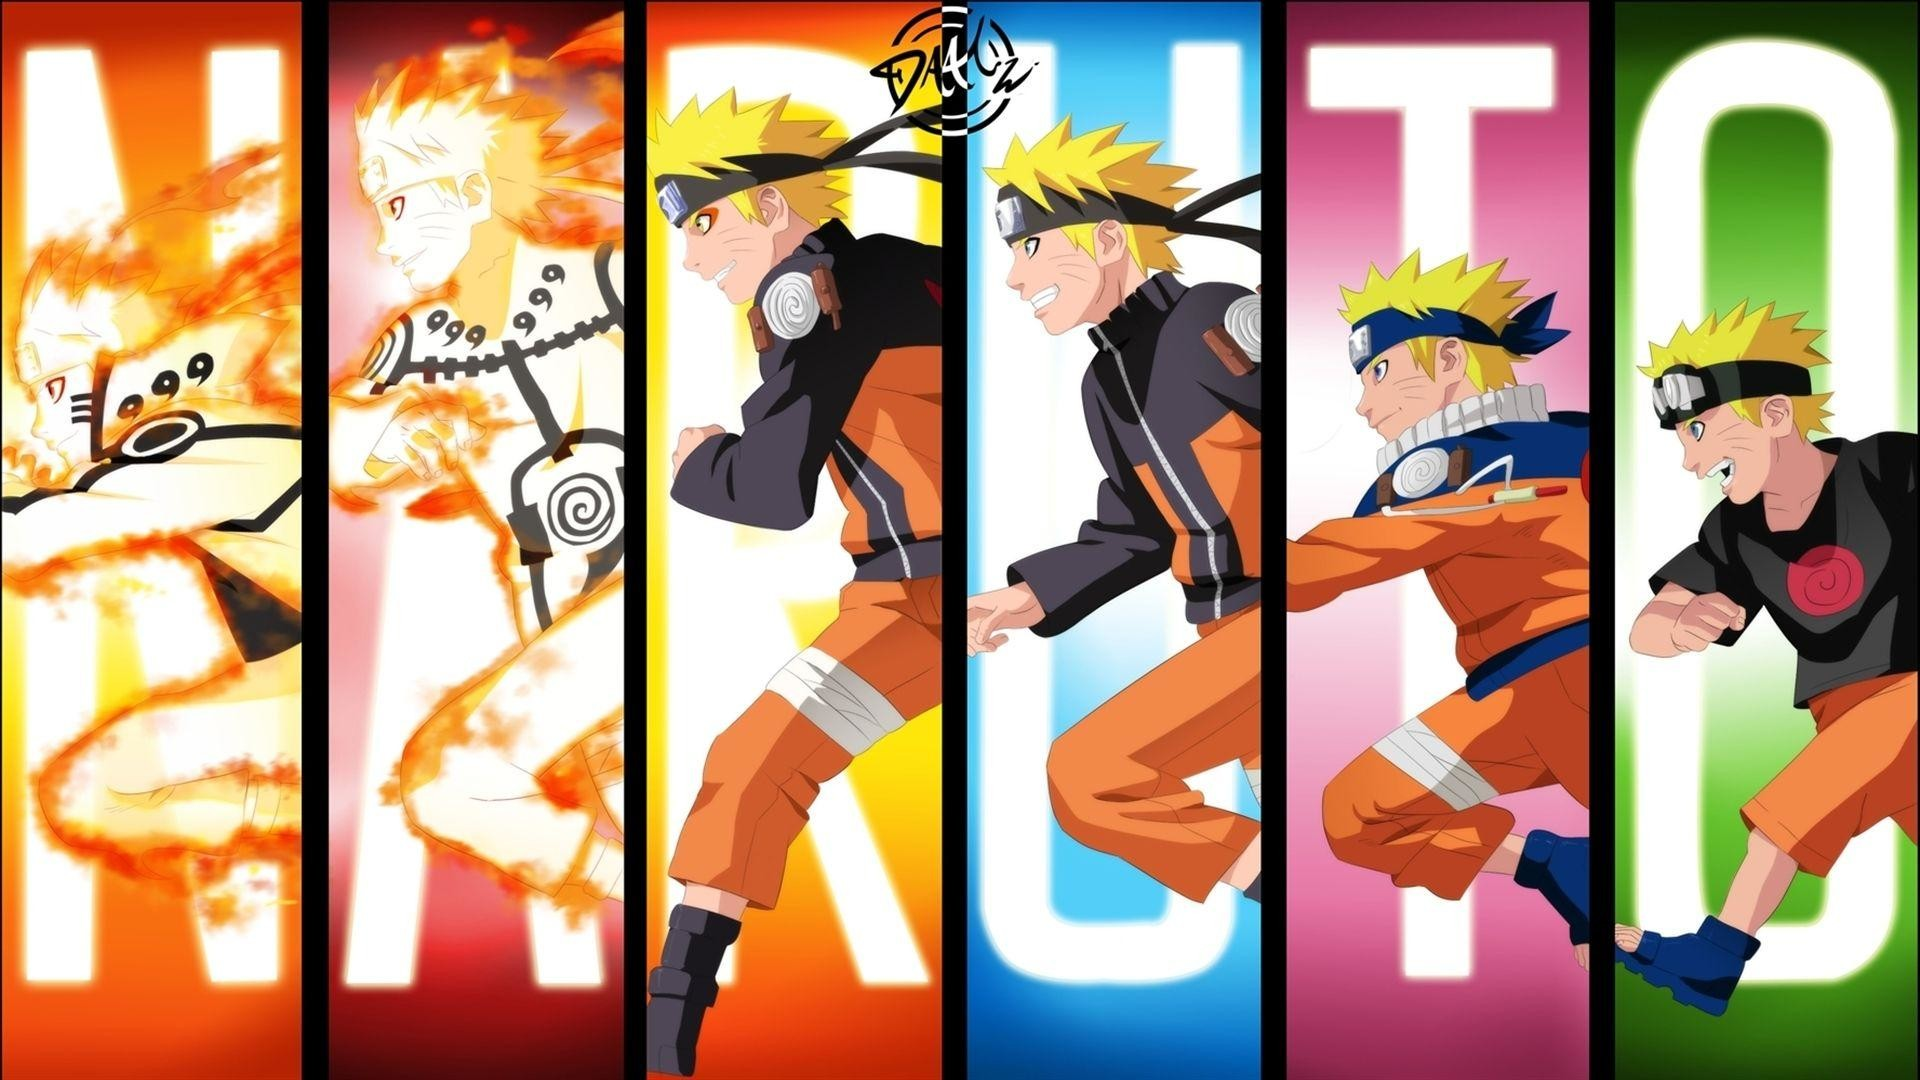 1920x1080 Naruto Wallpapers 10 cool pictures 29532 HD Wallpaper | Wallroro.